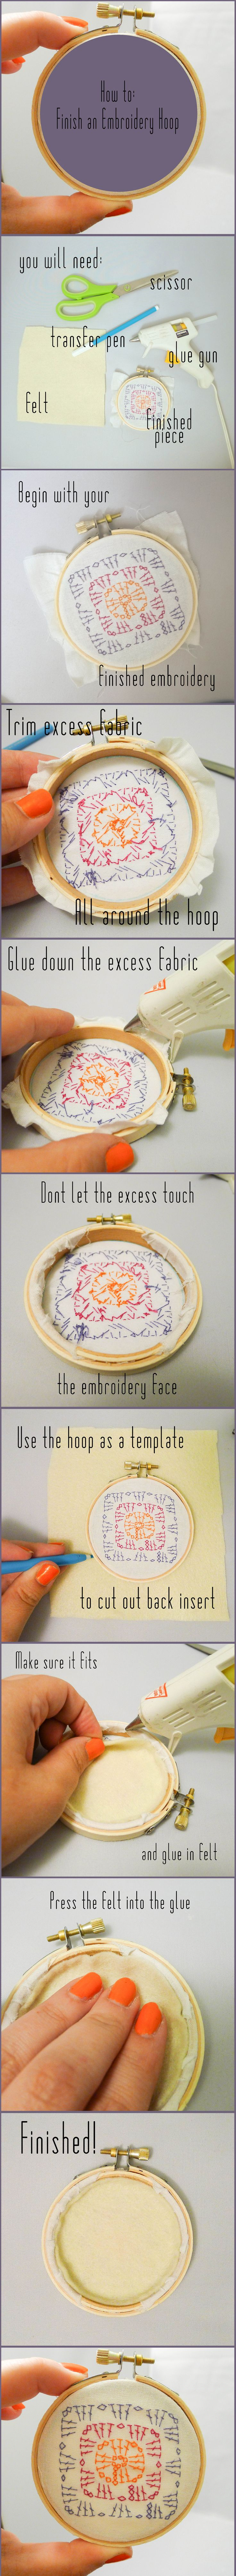 How to Finish an Embroidery Hoop by Teresa Millies from Daisies for Violet